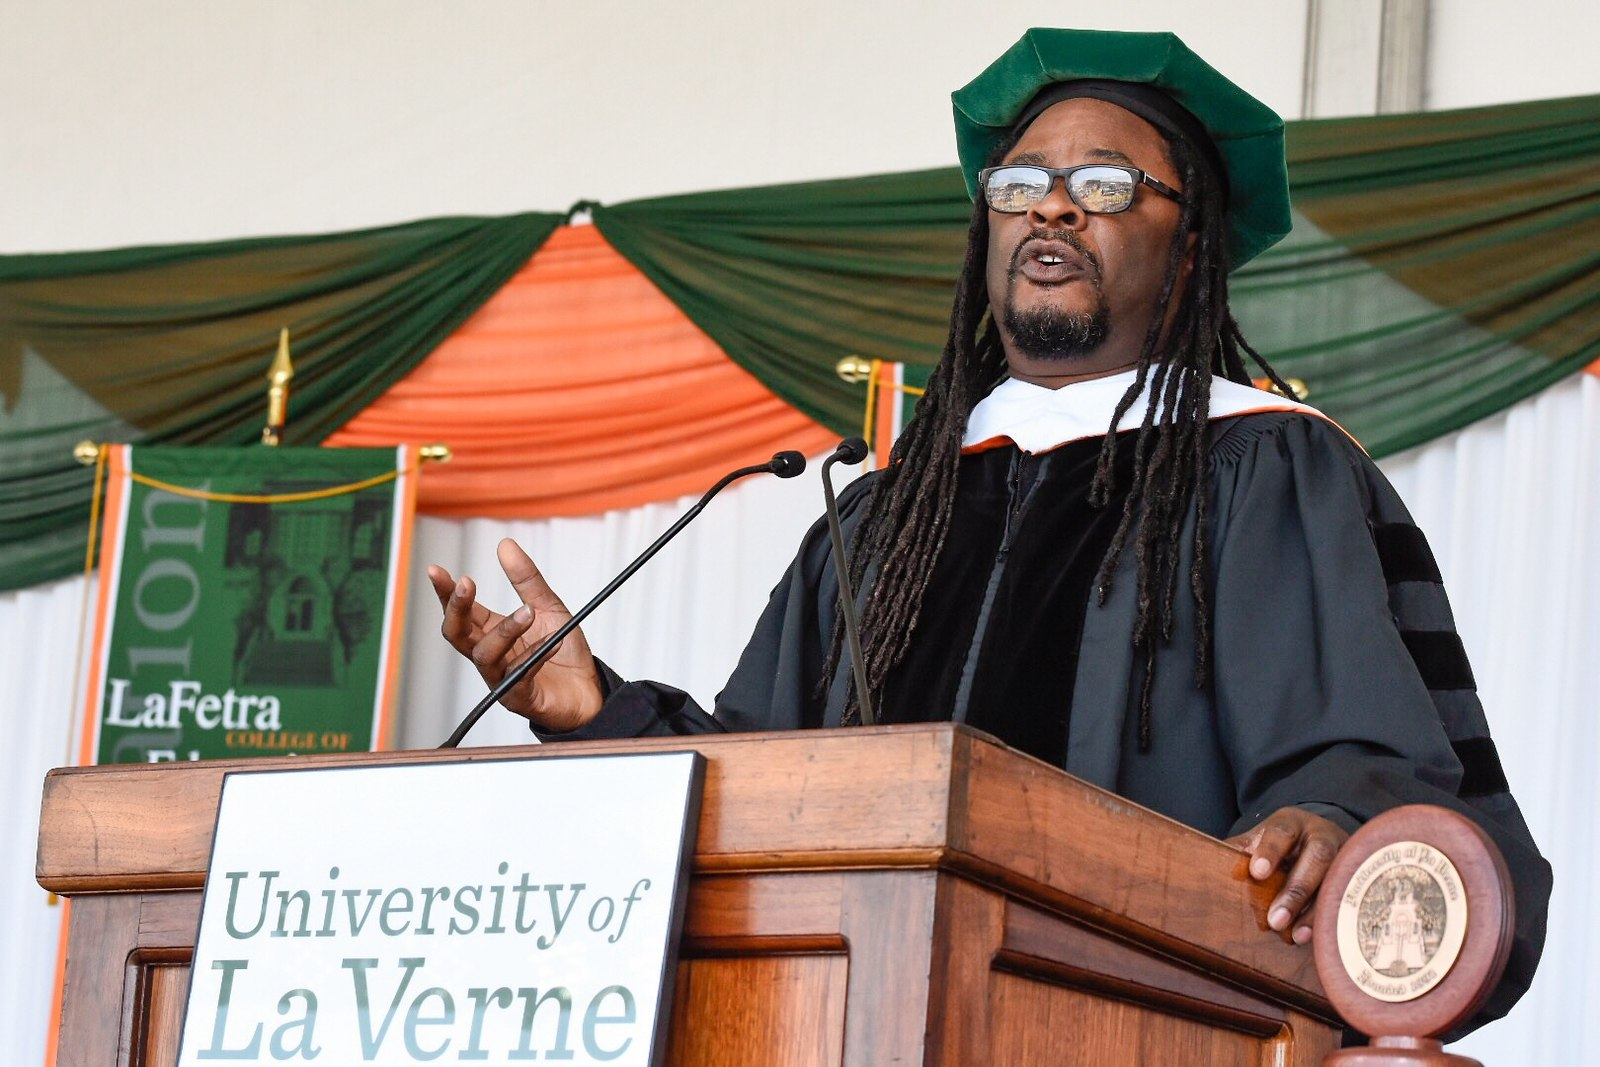 Lawrence Ross gives the keynote address during the University of La Verne's LaFetra College of Education commencement ceremony on June 3, 2018.